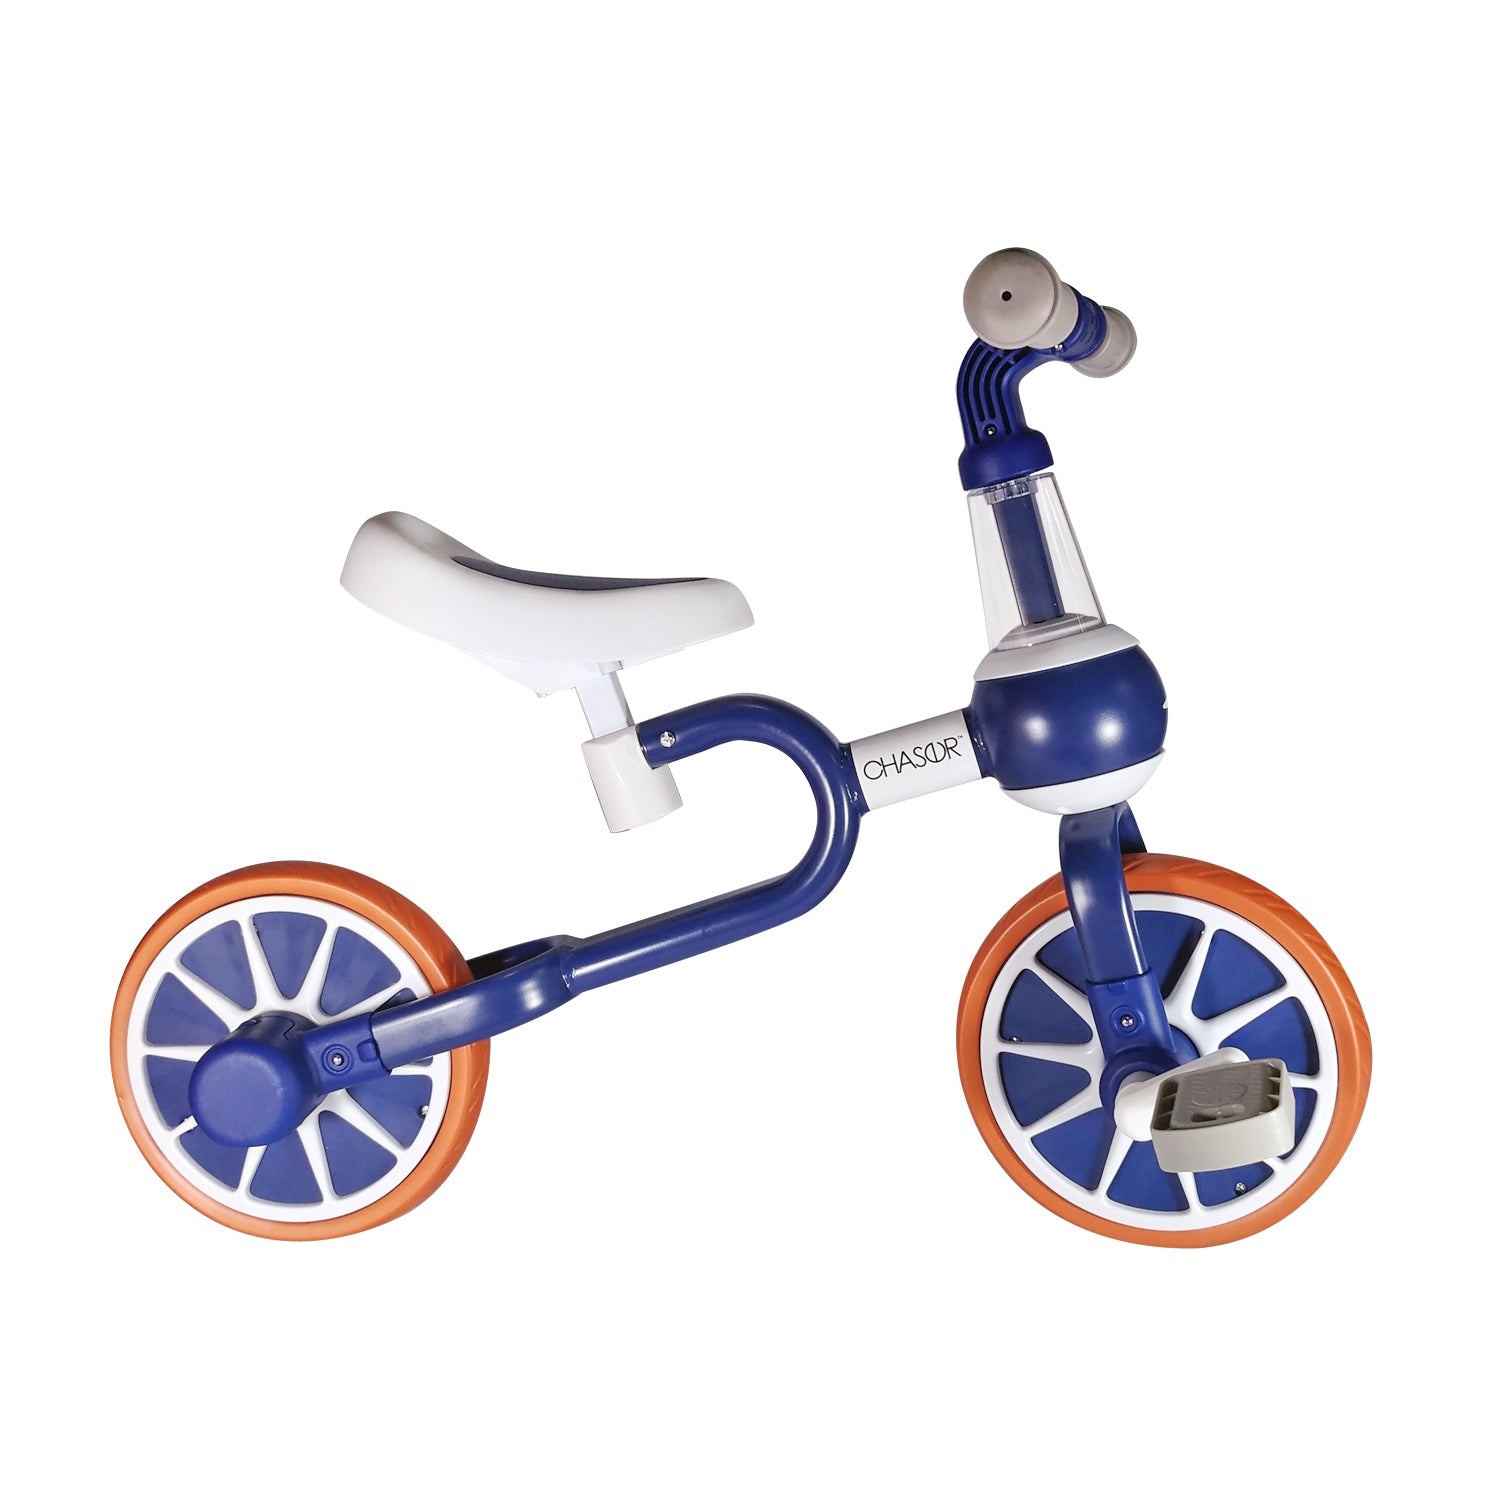 Chaser 3 IN 1 Trike Bike(HD-100B)-Navy Blue/White